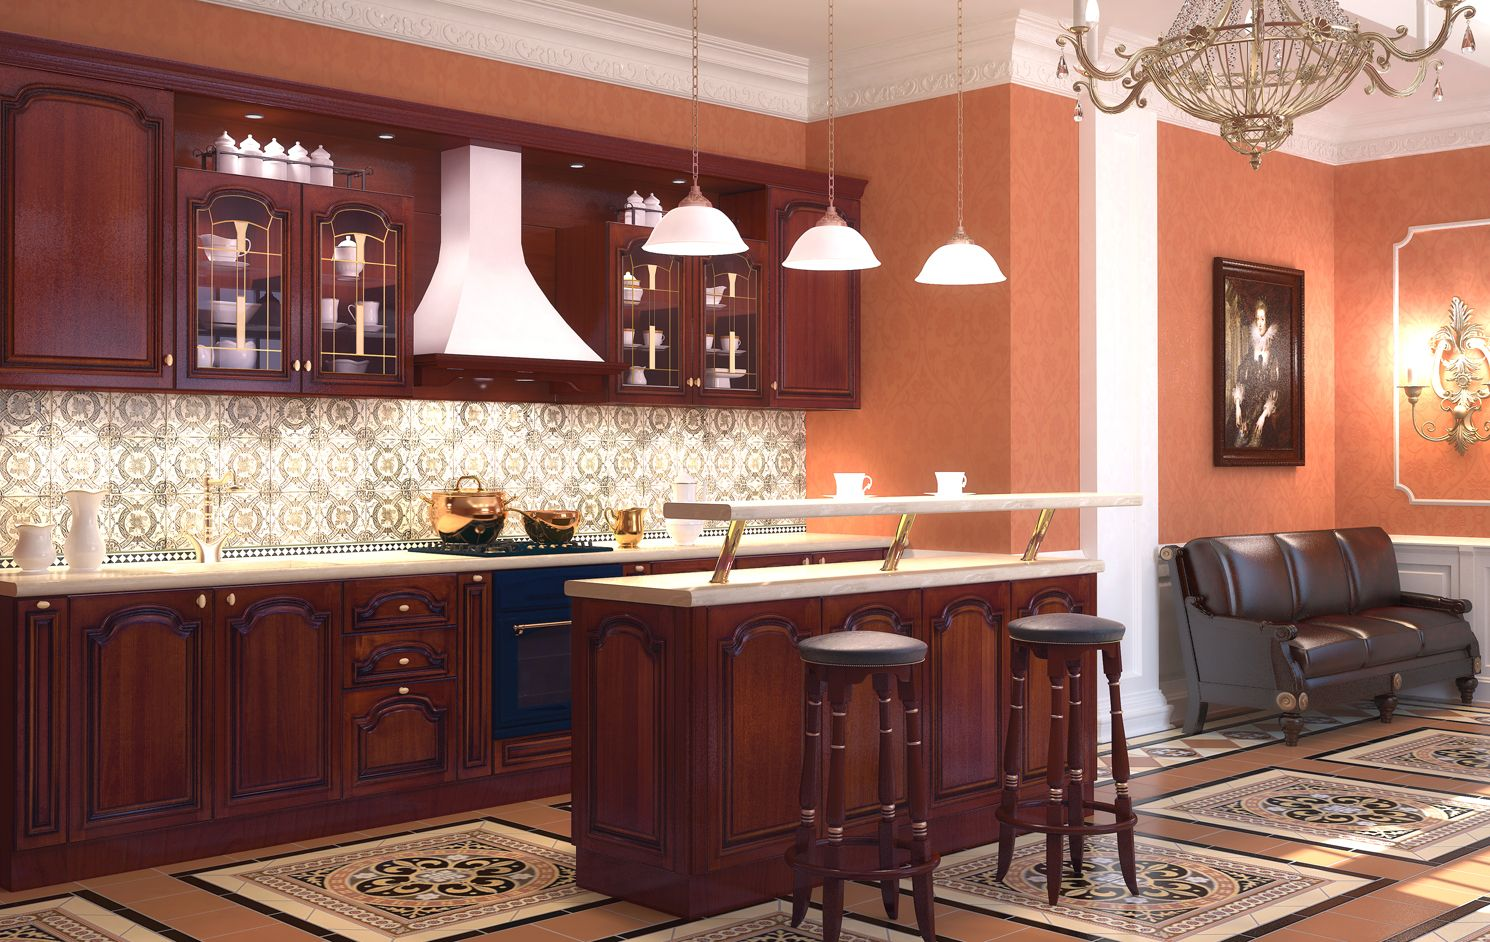 Island Bar At The Dining Zone Of Combined Kitchen With Living Room